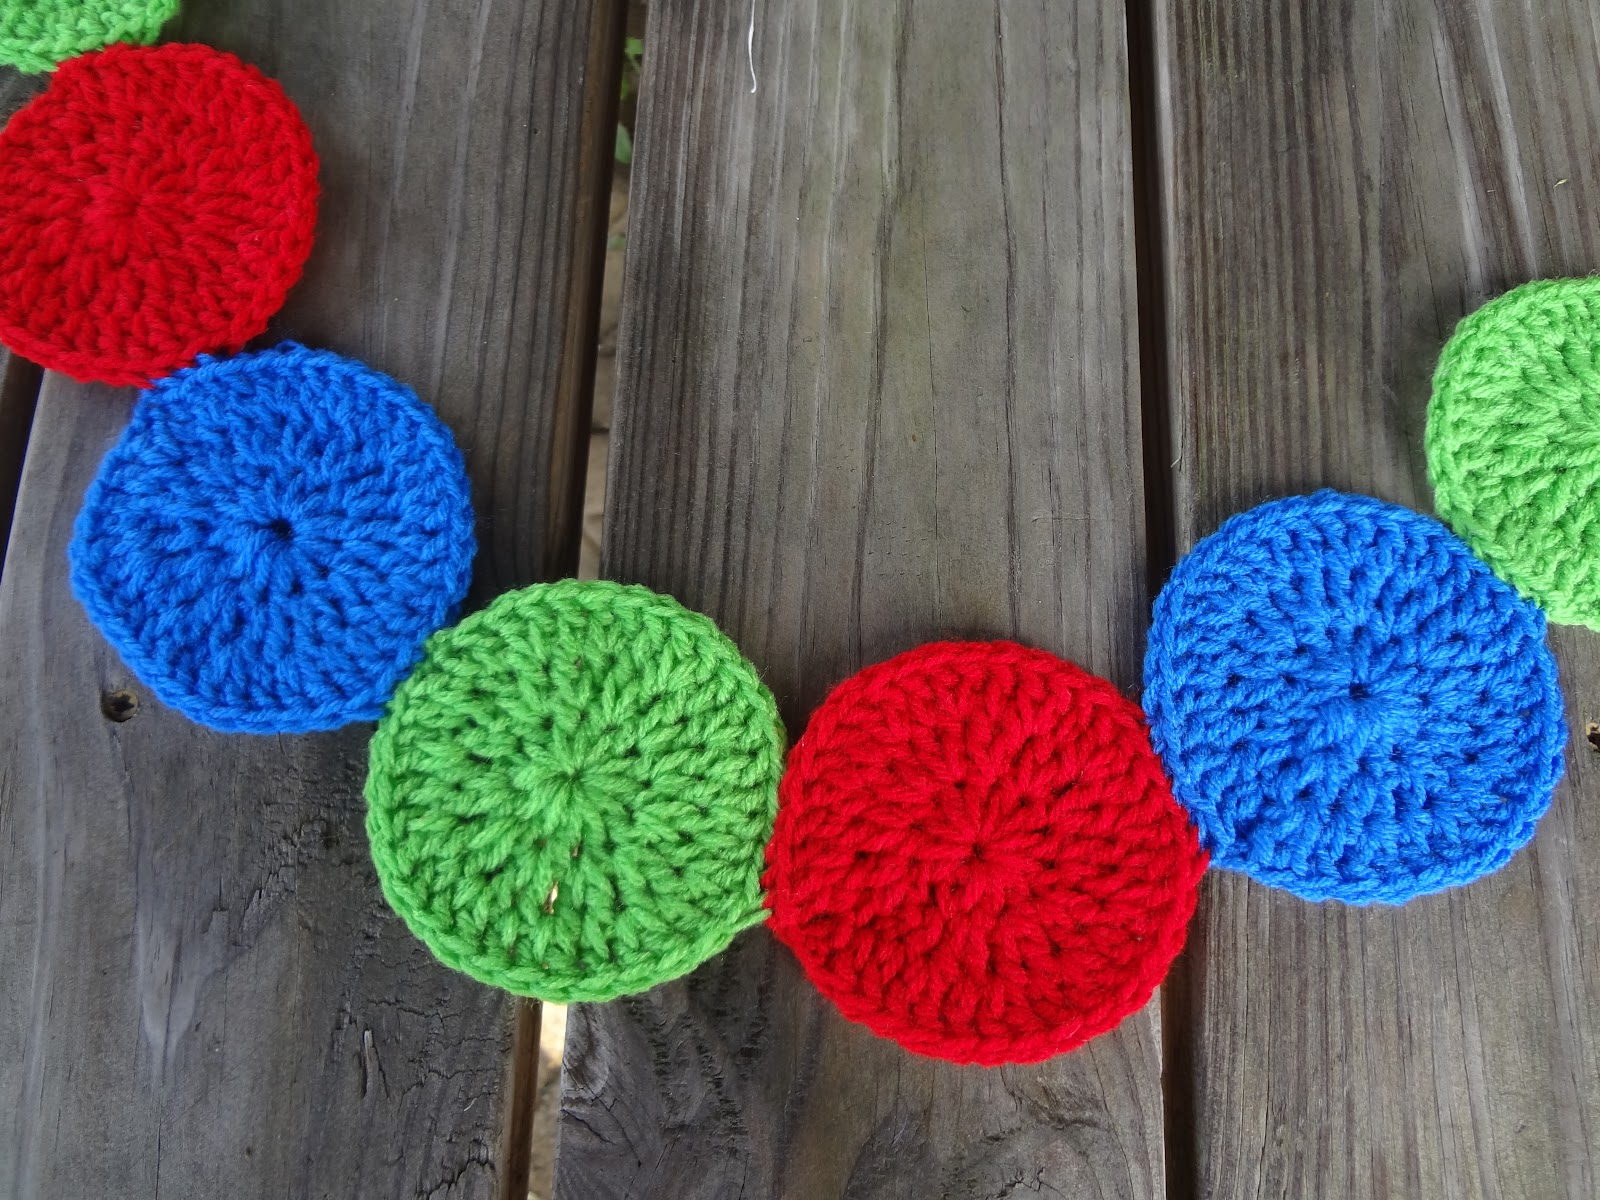 Crochet Patterns Circle : Fiber Flux: Free Crochet Pattern...Modern Circles Garland!